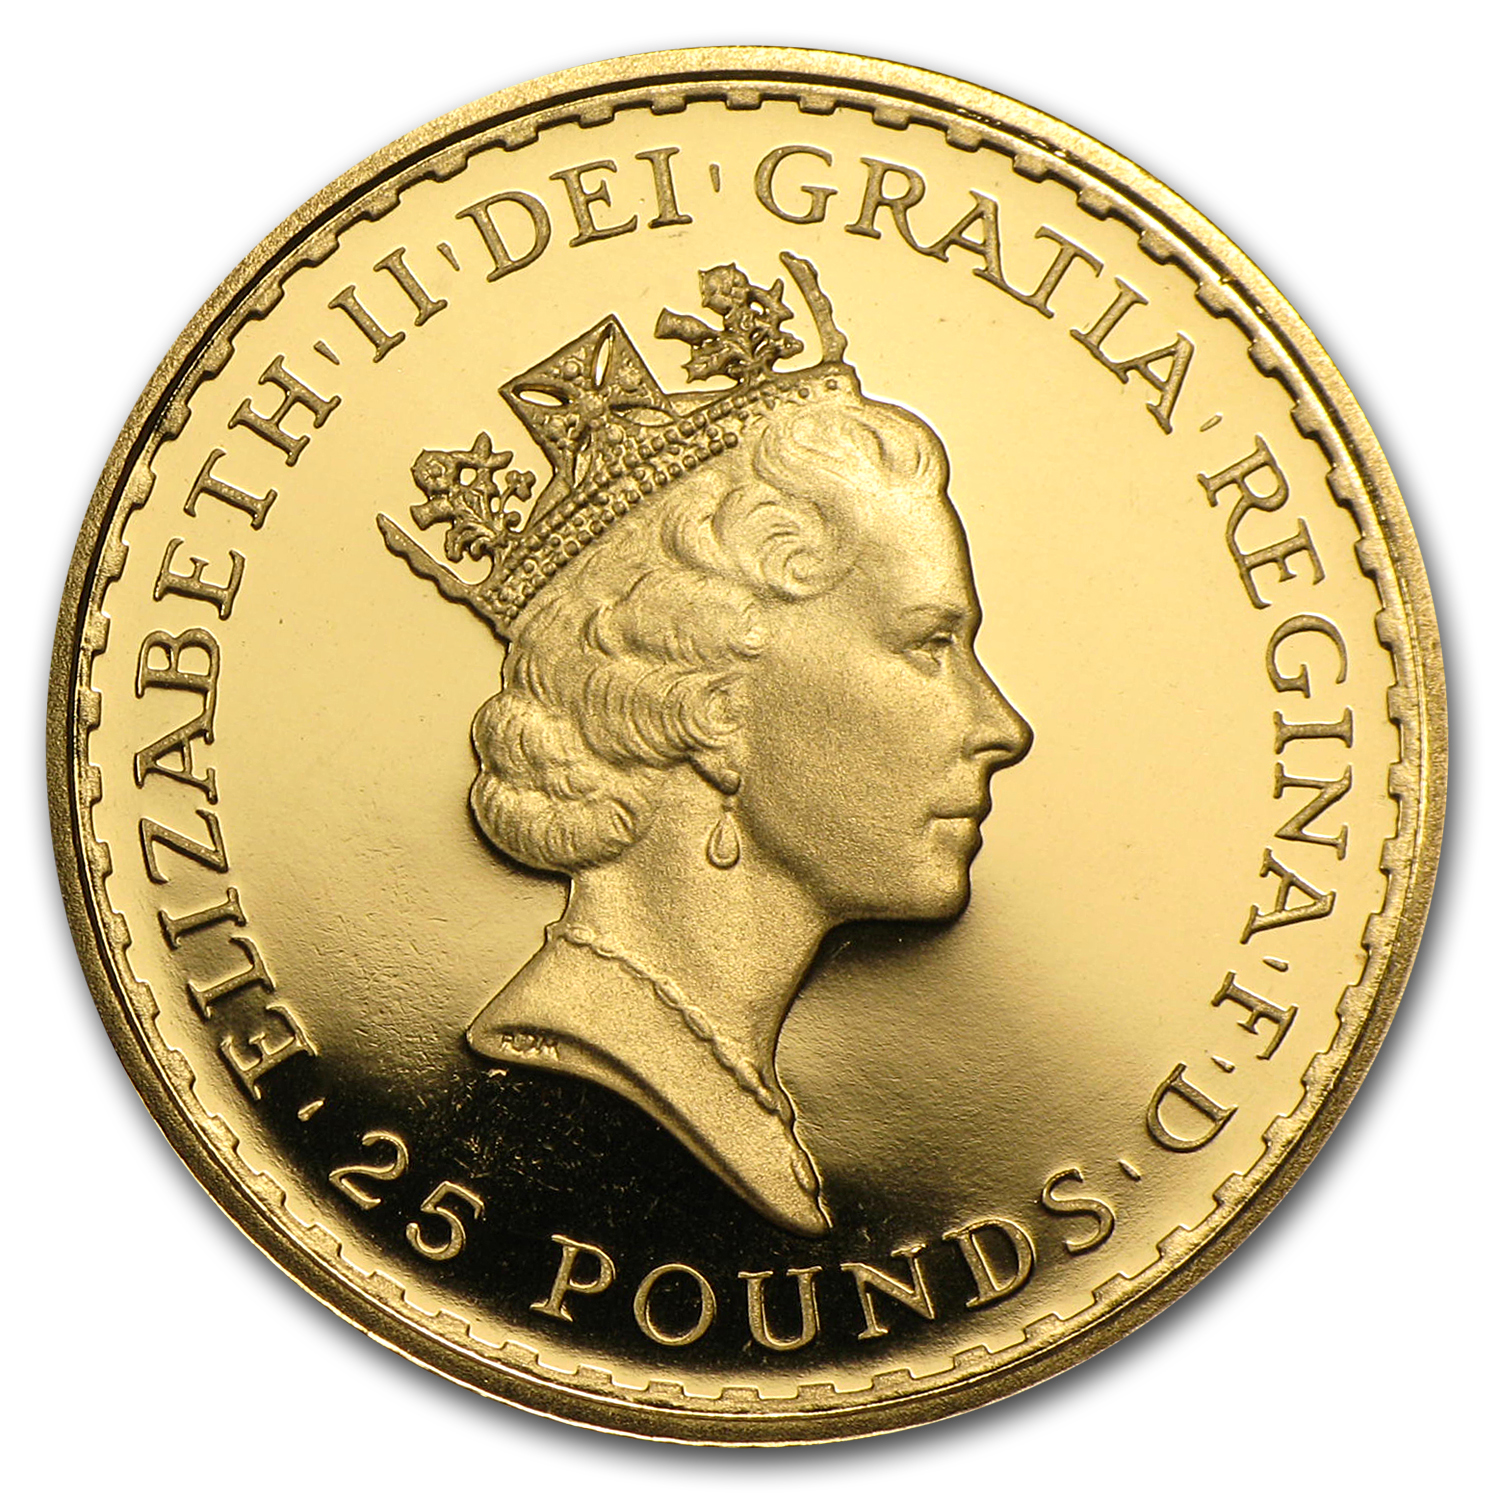 1990 1/4 oz Proof Gold Britannia